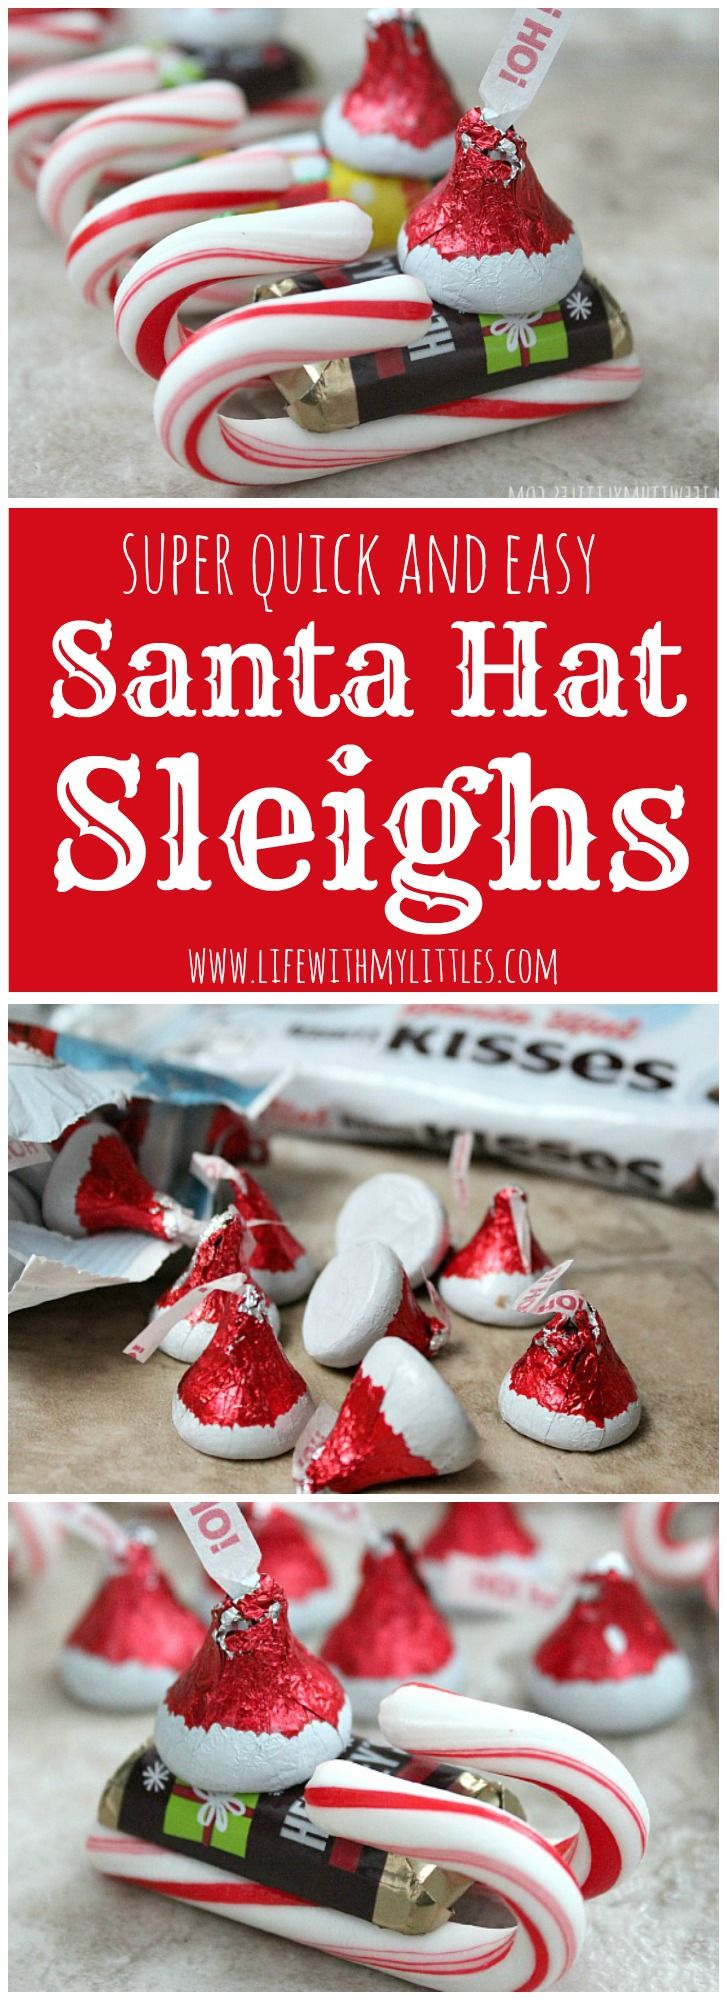 Easy to make christmas crafts for toddlers - Candy Santa Hat Sleighs Christmas Snackschristmas Crafts For Kidschristmas